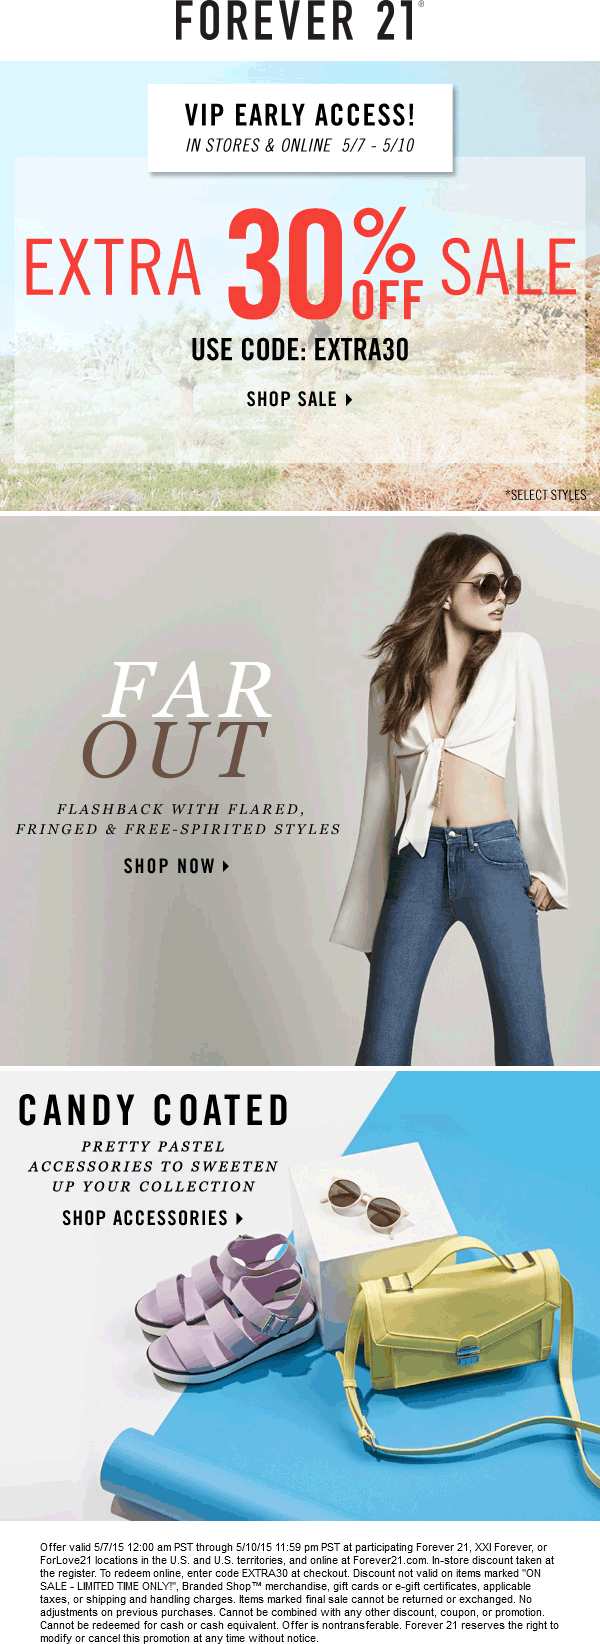 Forever 21 Coupon October 2018 Extra 30% off sale items at Forever 21, XXI Forever, or ForLove21, or online via promo code EXTRA30